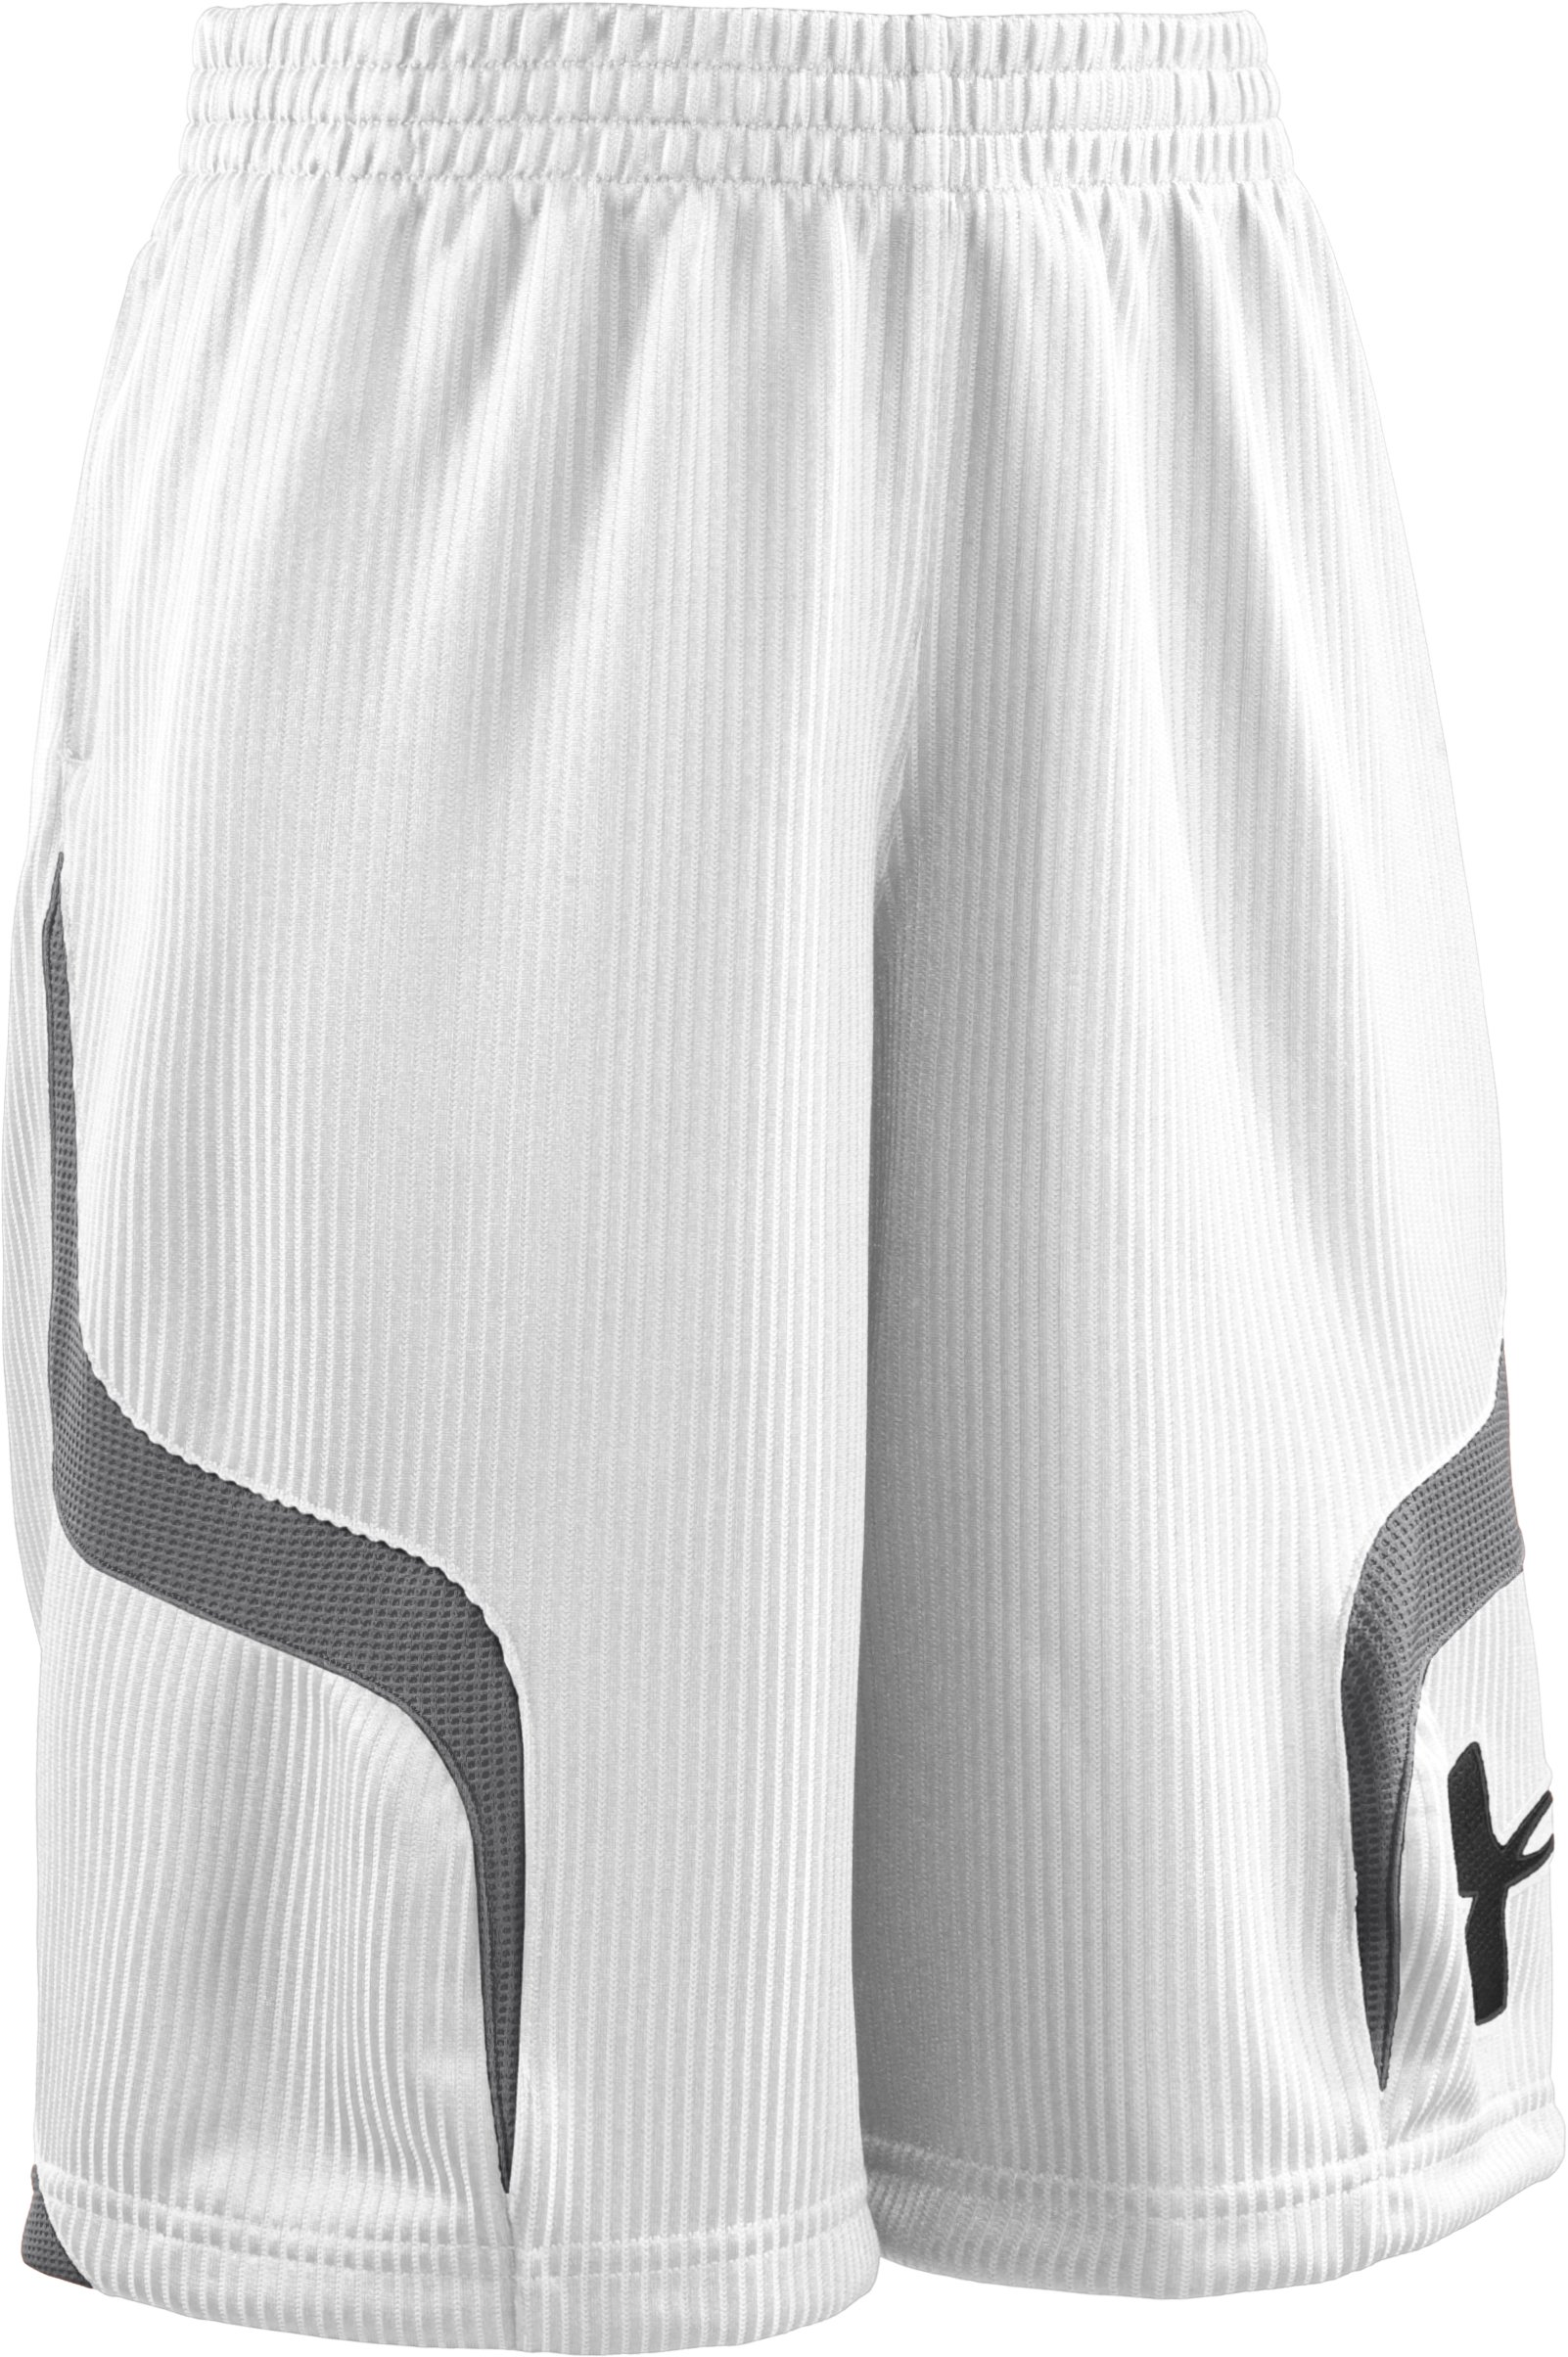 "Boys' Valkyrie 10"" Basketball Shorts, White, zoomed image"